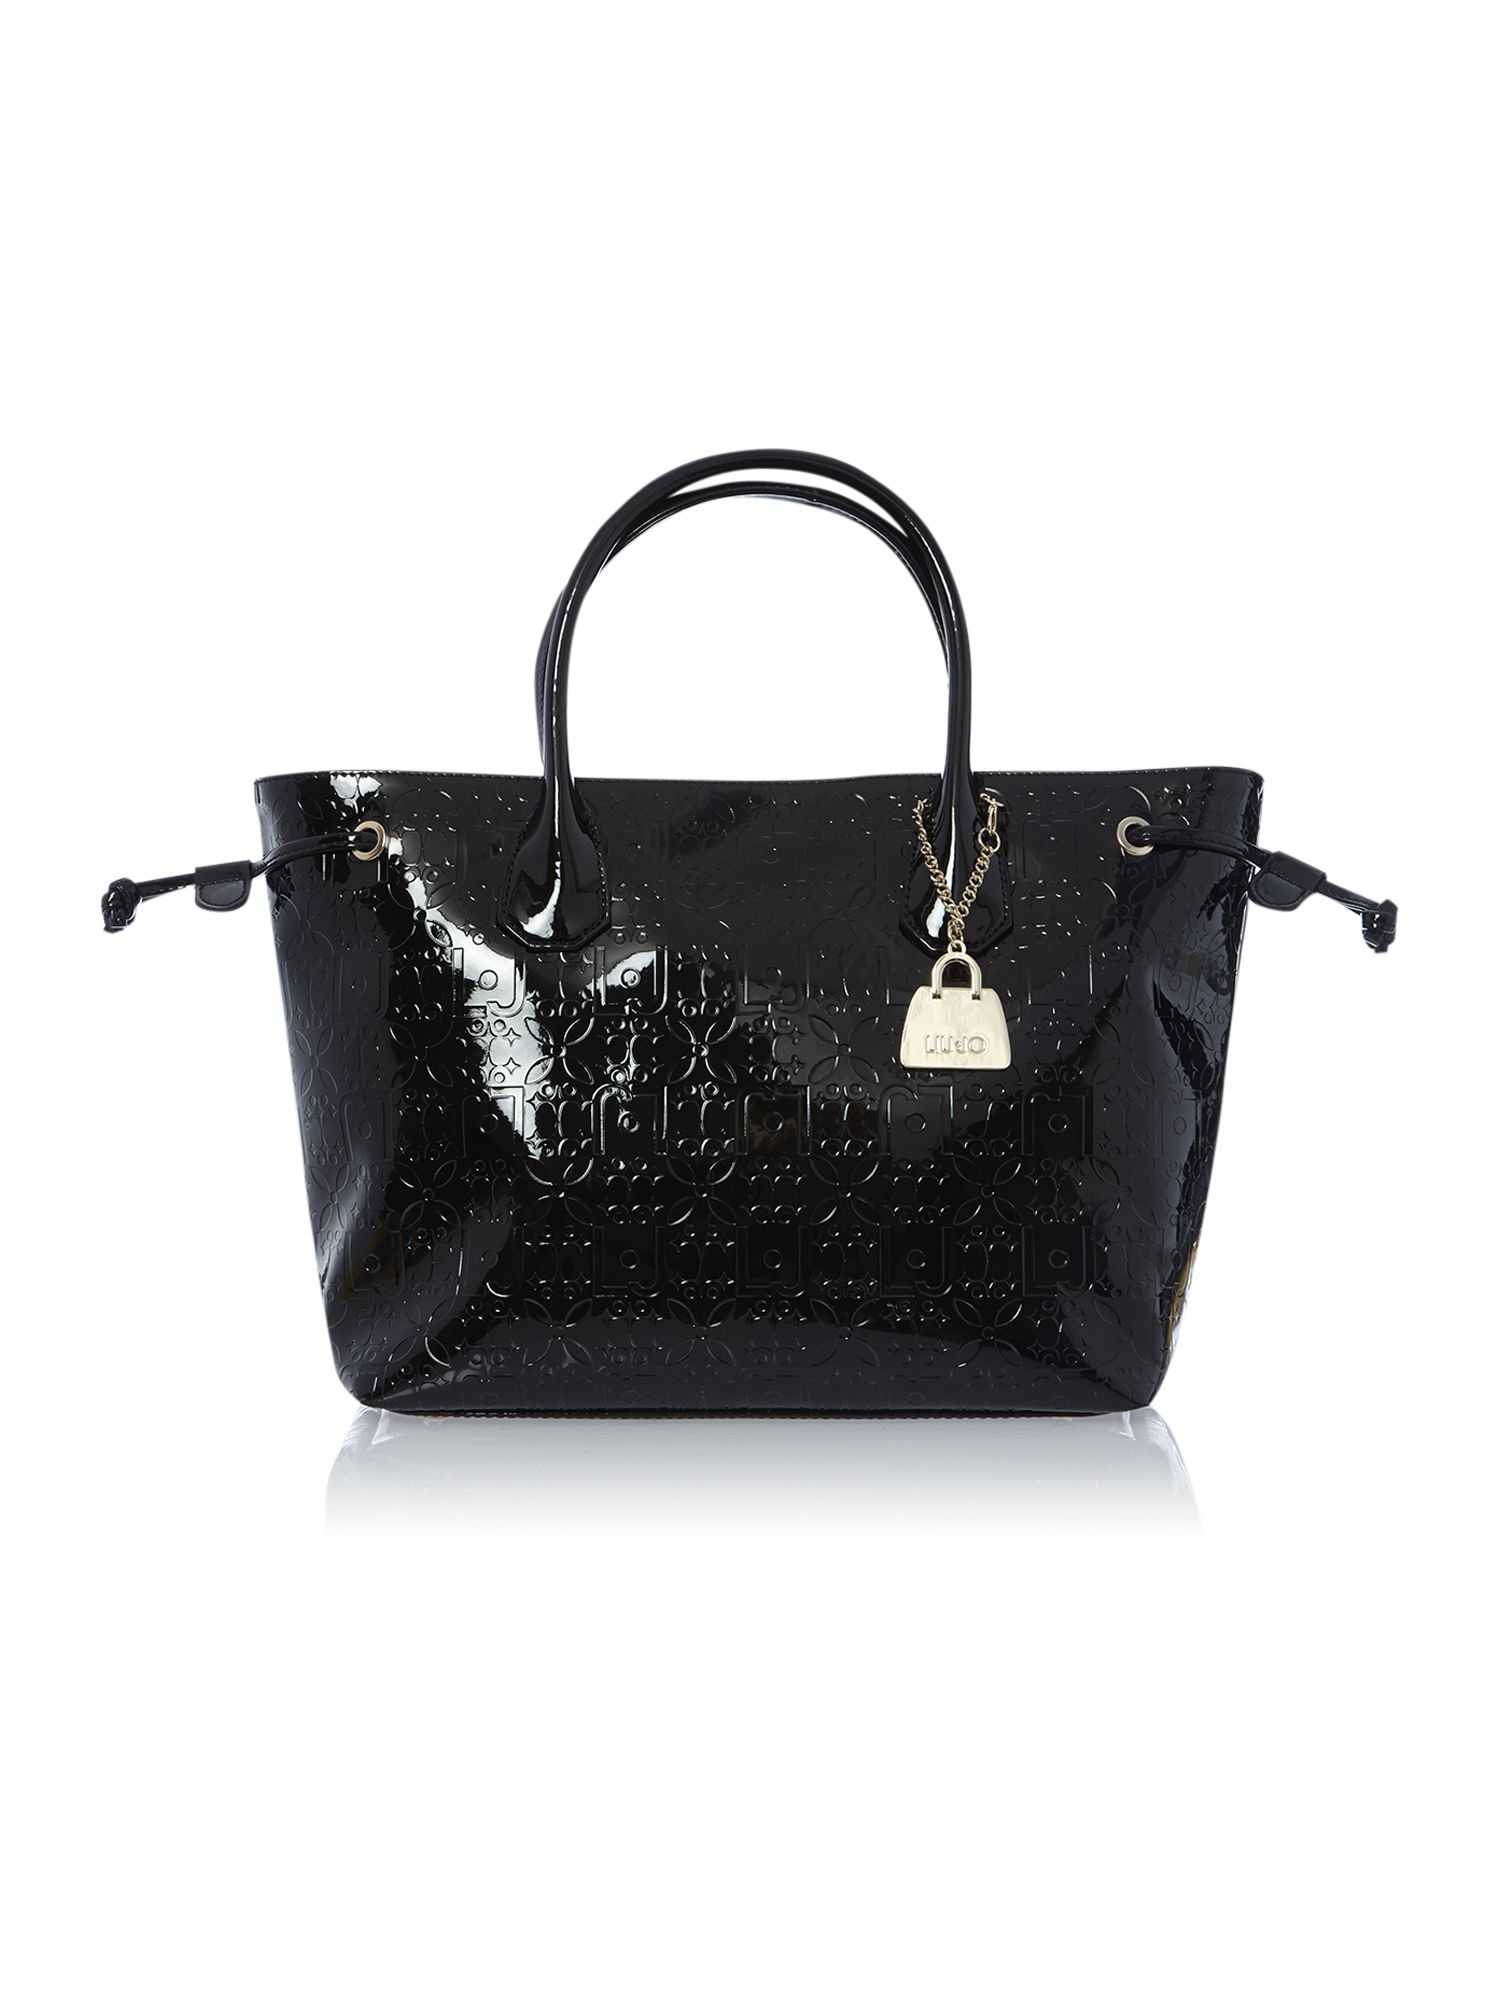 Melanie black tote bag